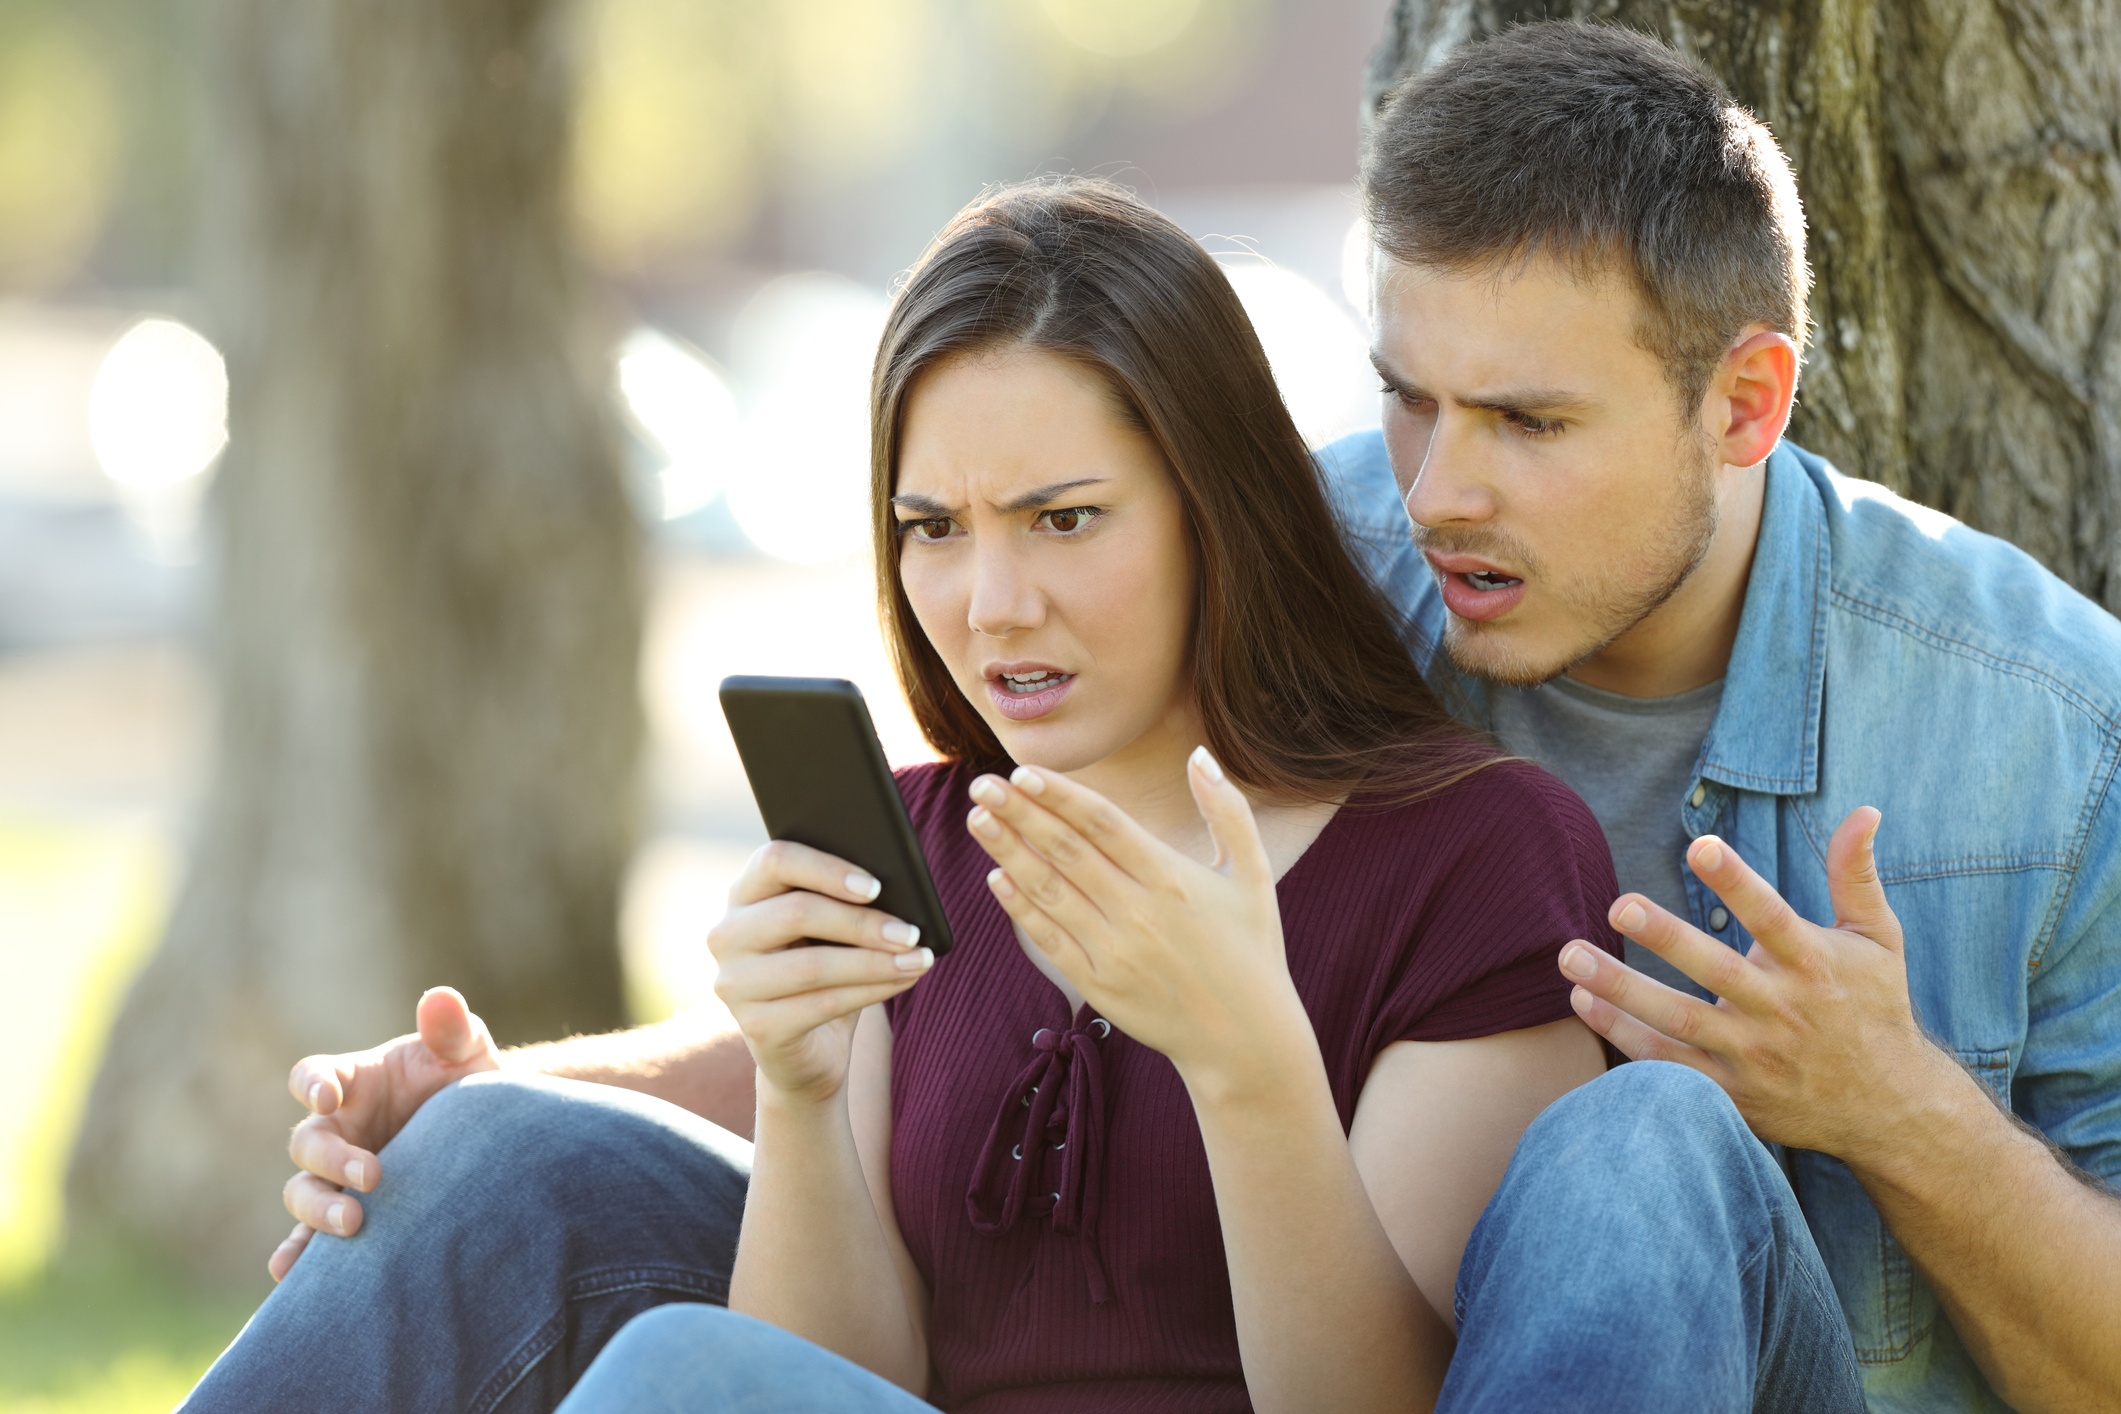 Implications of Social Media, Relationships and Divorce